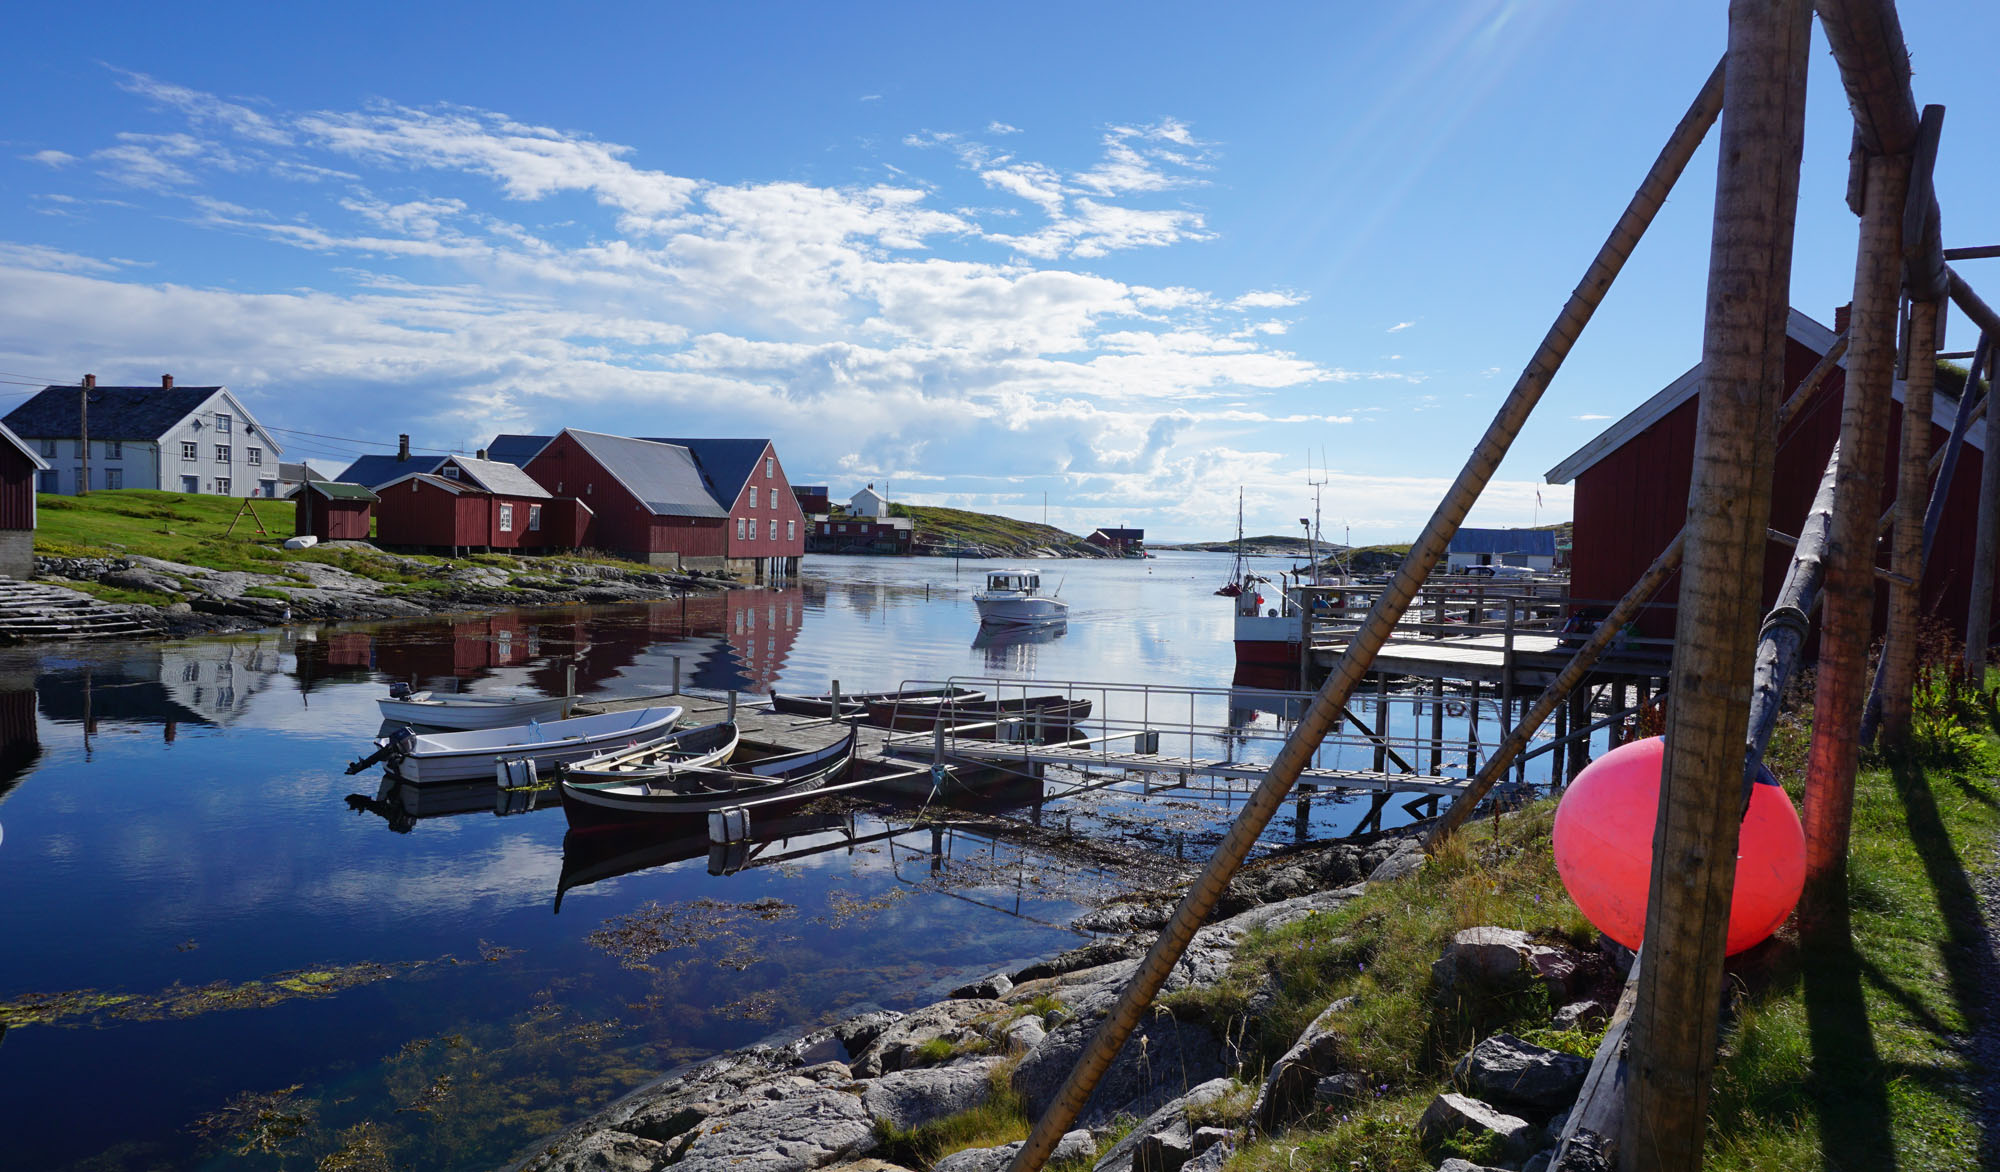 Docks, houses and boats along the coast, Sør-Gjæslingan, Rørvik.